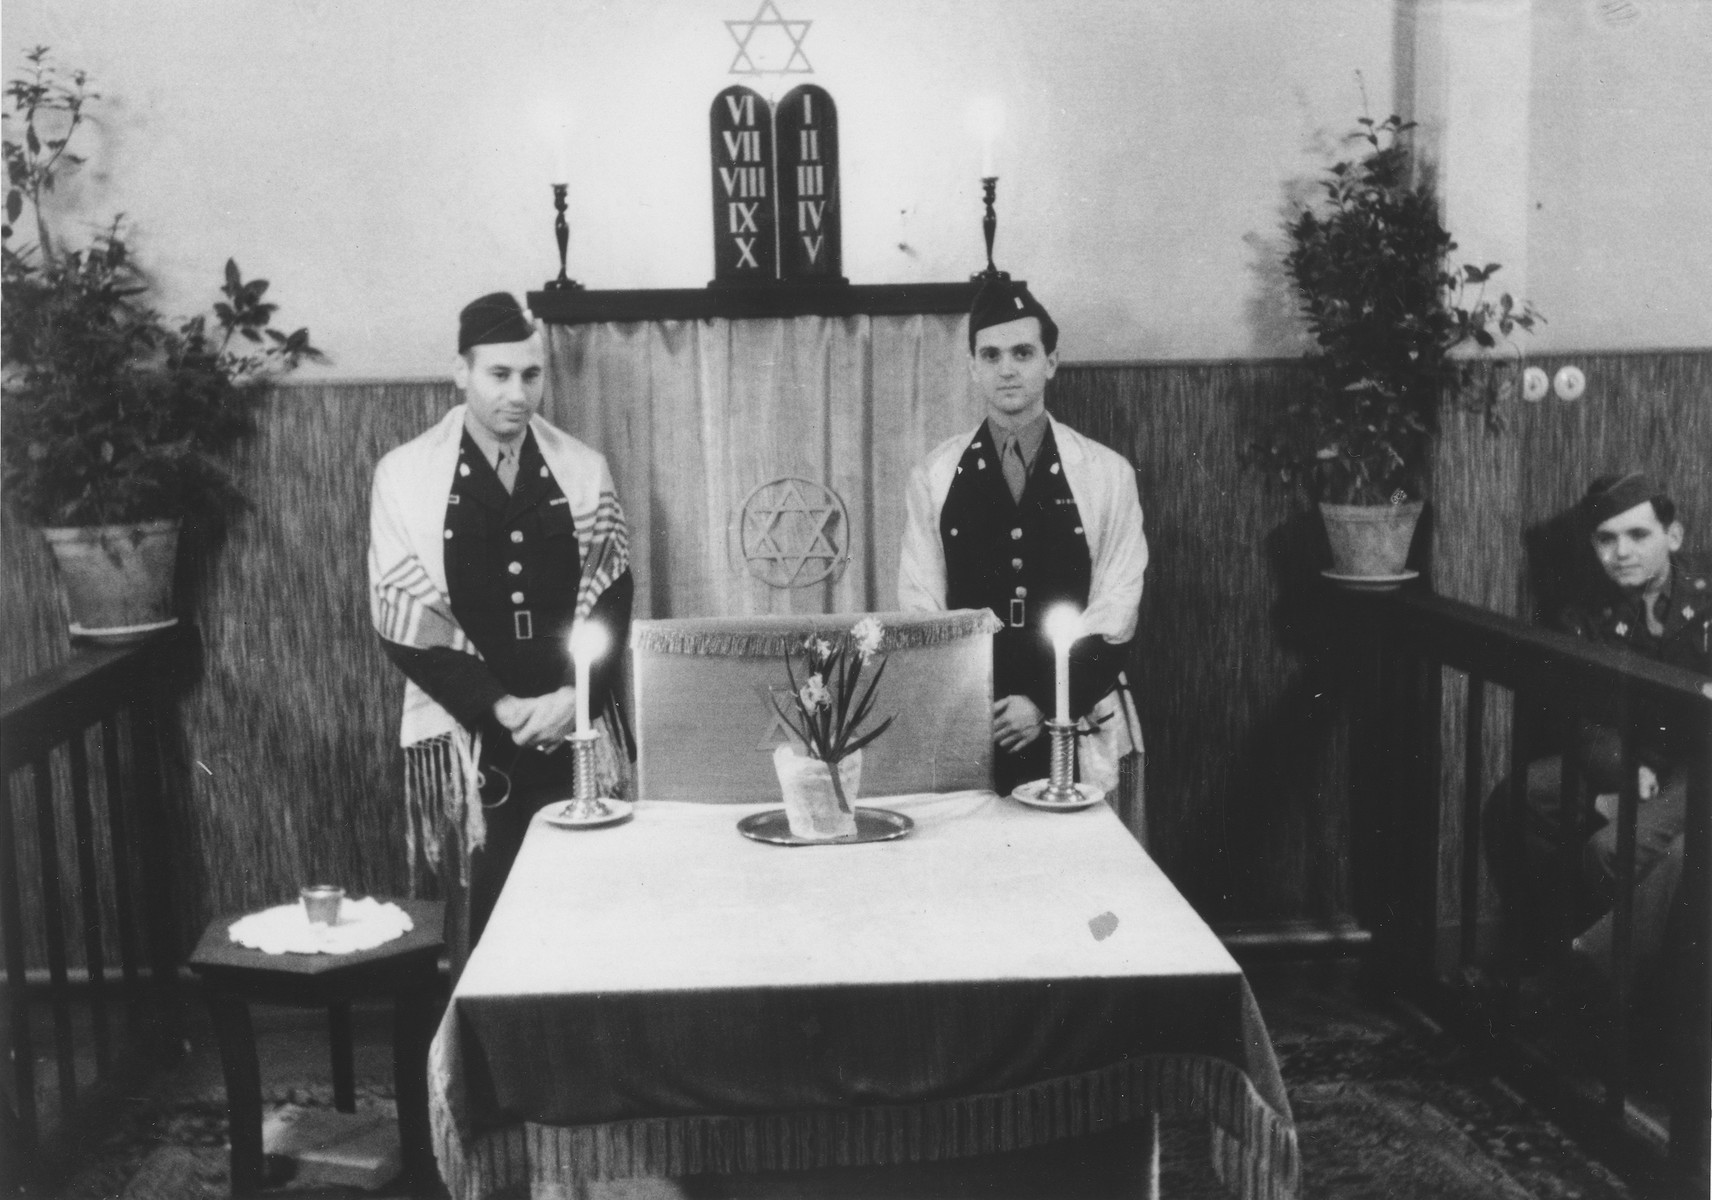 Outgoing chaplain, Rabbi Ernst Lorge (left) conducts Sabbath services with incoming chaplain, Rabbi Mayer Abramowitz in the chapel at U.S. Army Third Division headquarters in Bad Wildungen.